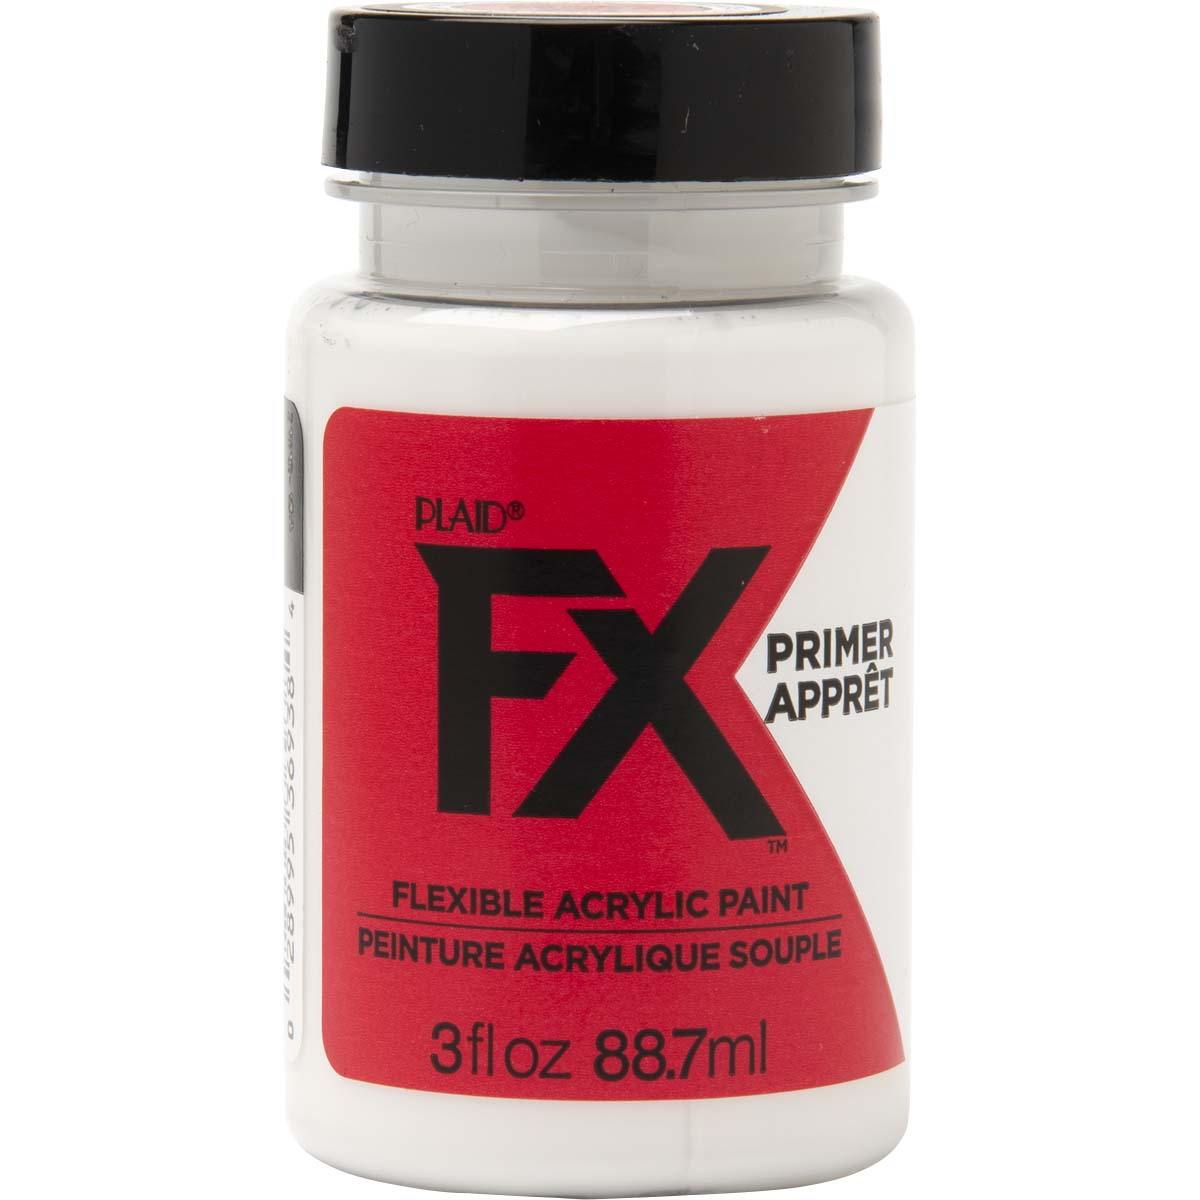 PlaidFX Paint Primer - Clear, 3 oz.